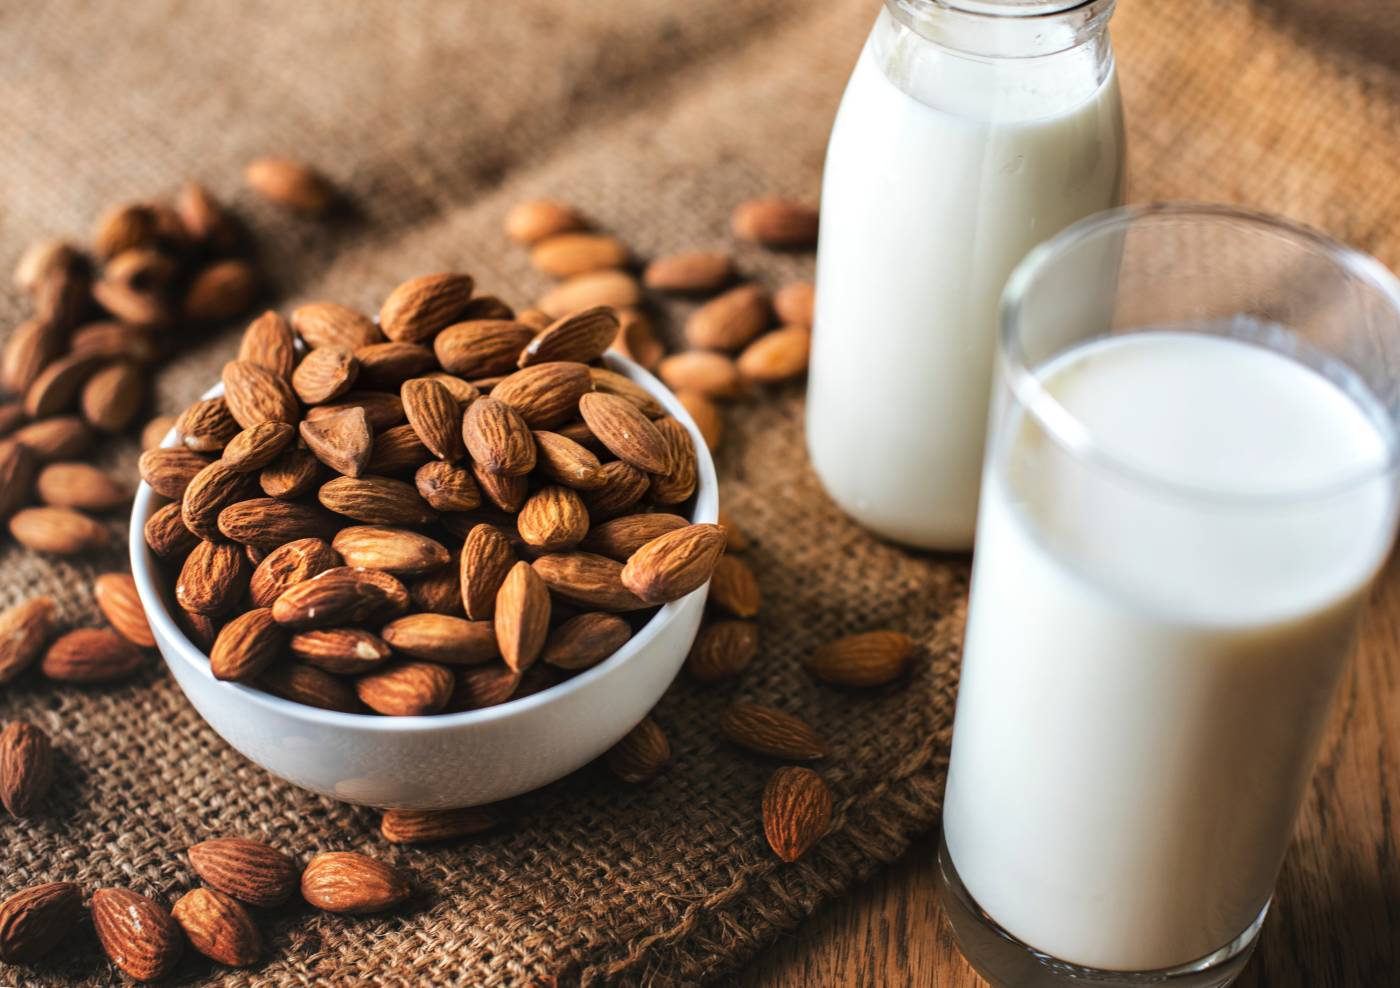 almond-almond-milk-bottle-1446318